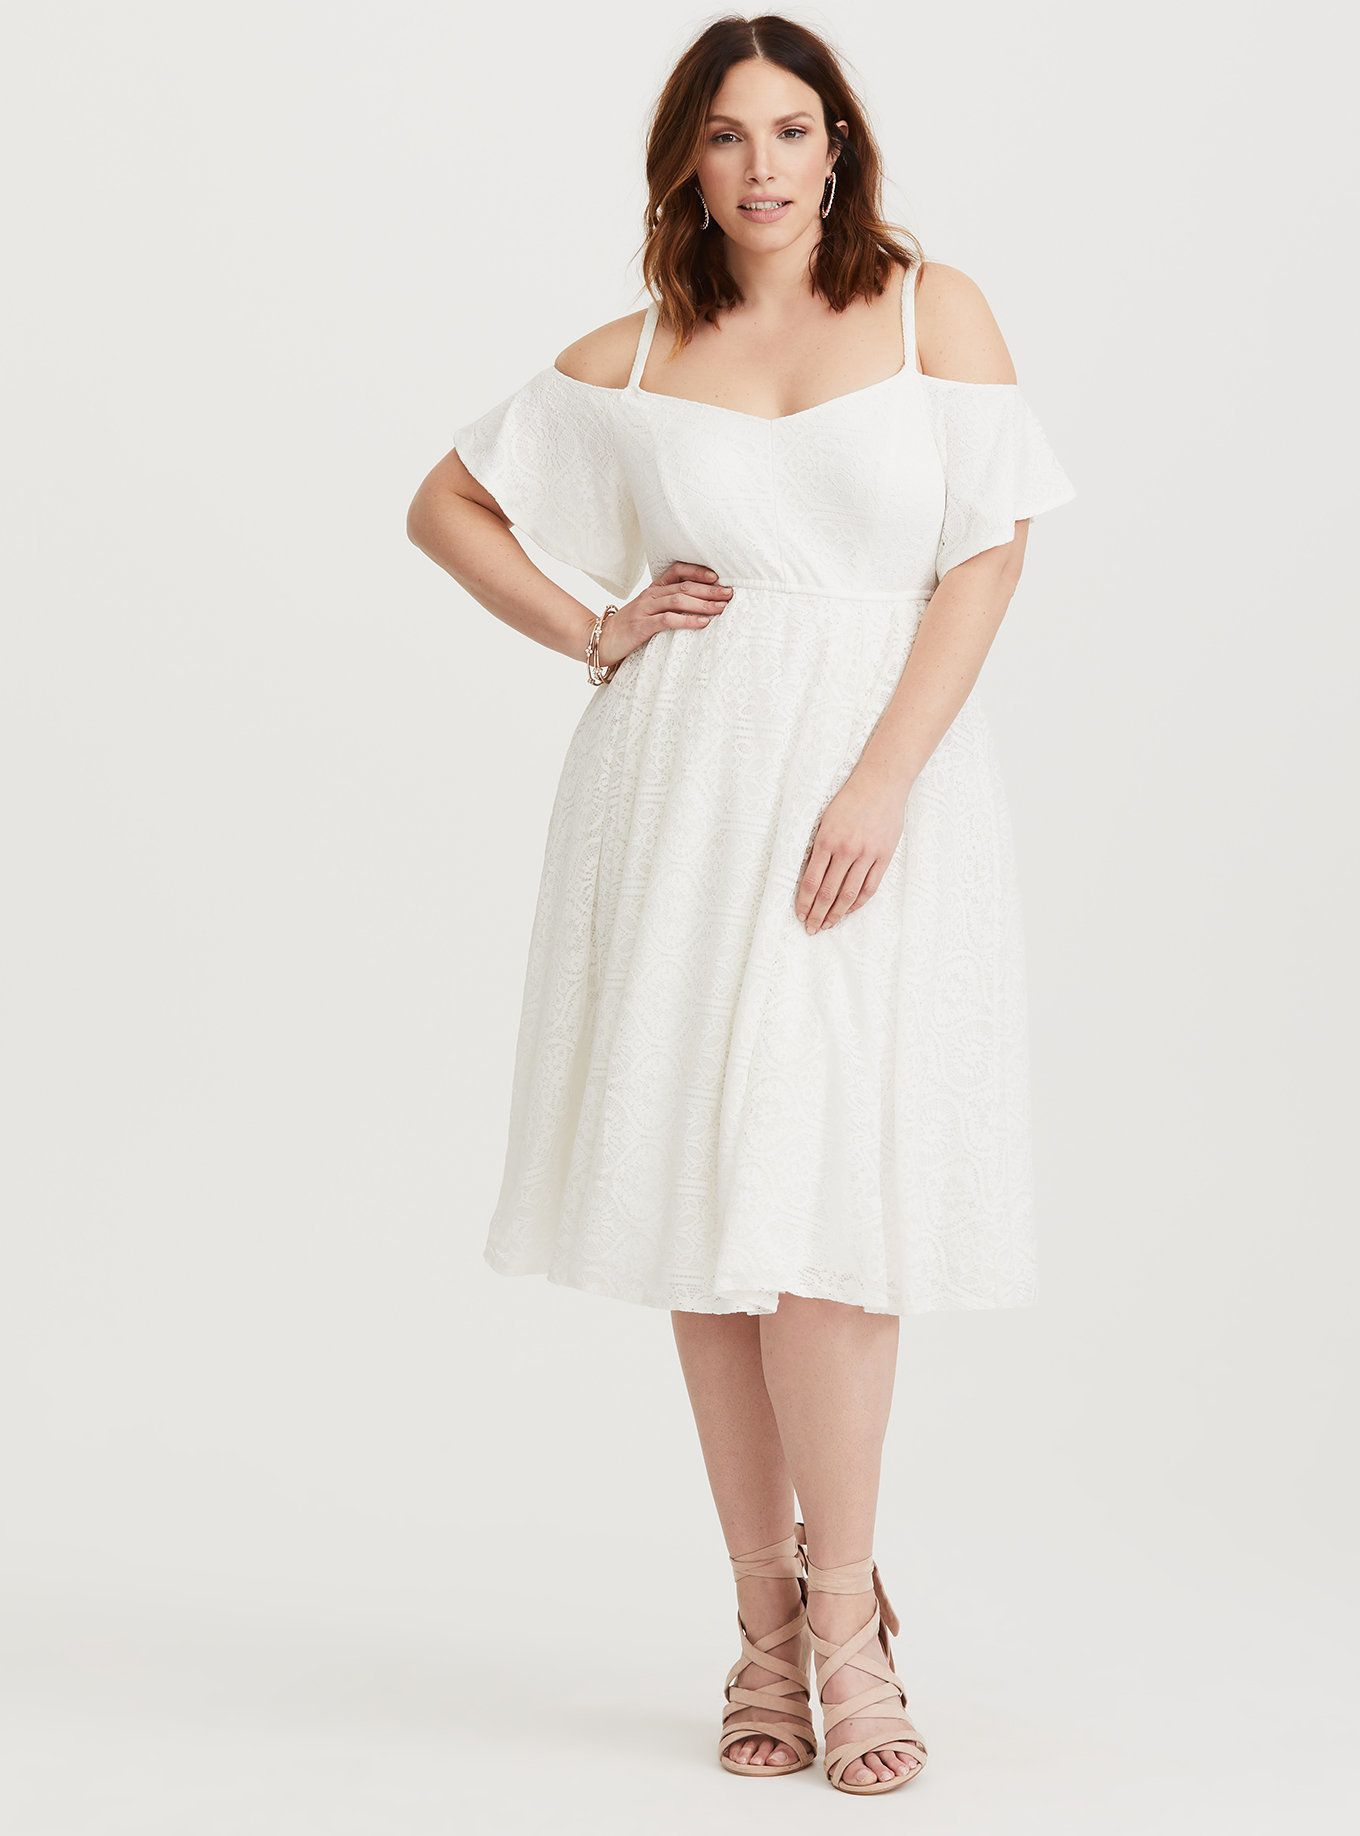 """Get it <a href=""""https://www.torrid.com/product/special-occasion-ivory-lace-skater-dress/11349703.html?cgid=dresses-specialocc"""